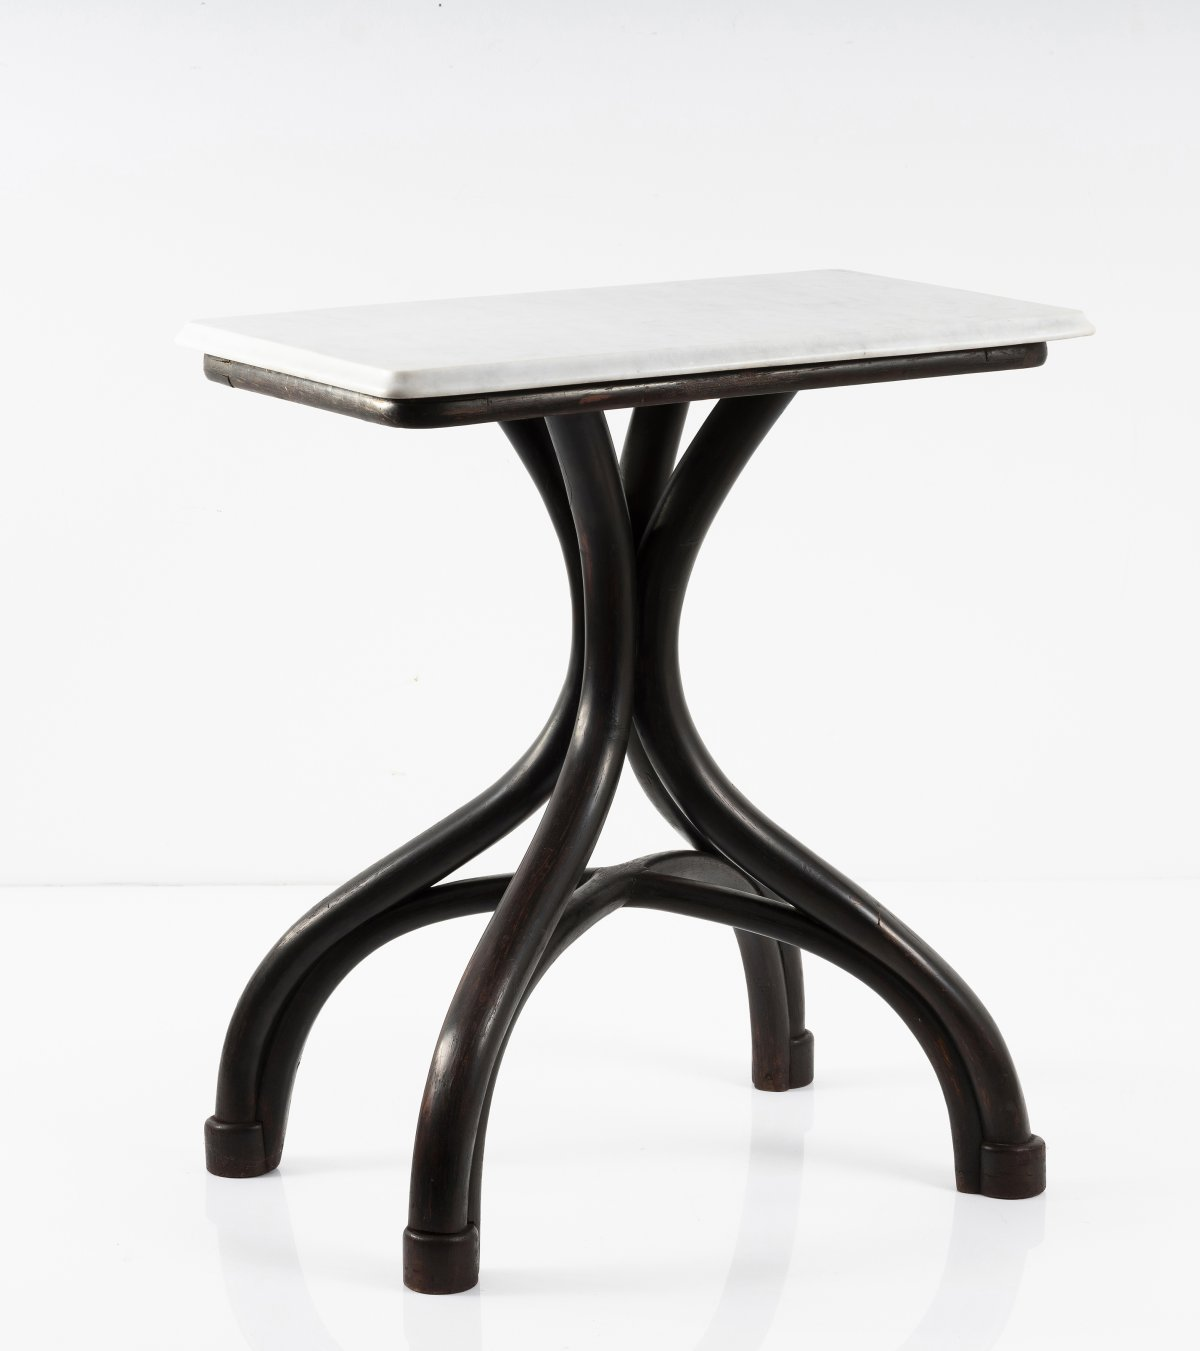 Lot 60 - Michael Thonet, Caféhaus table 'Nr. 8', c. 1866Caféhaus table 'Nr. 8', c. 1866H. 76 cm, 67.5 x 46.